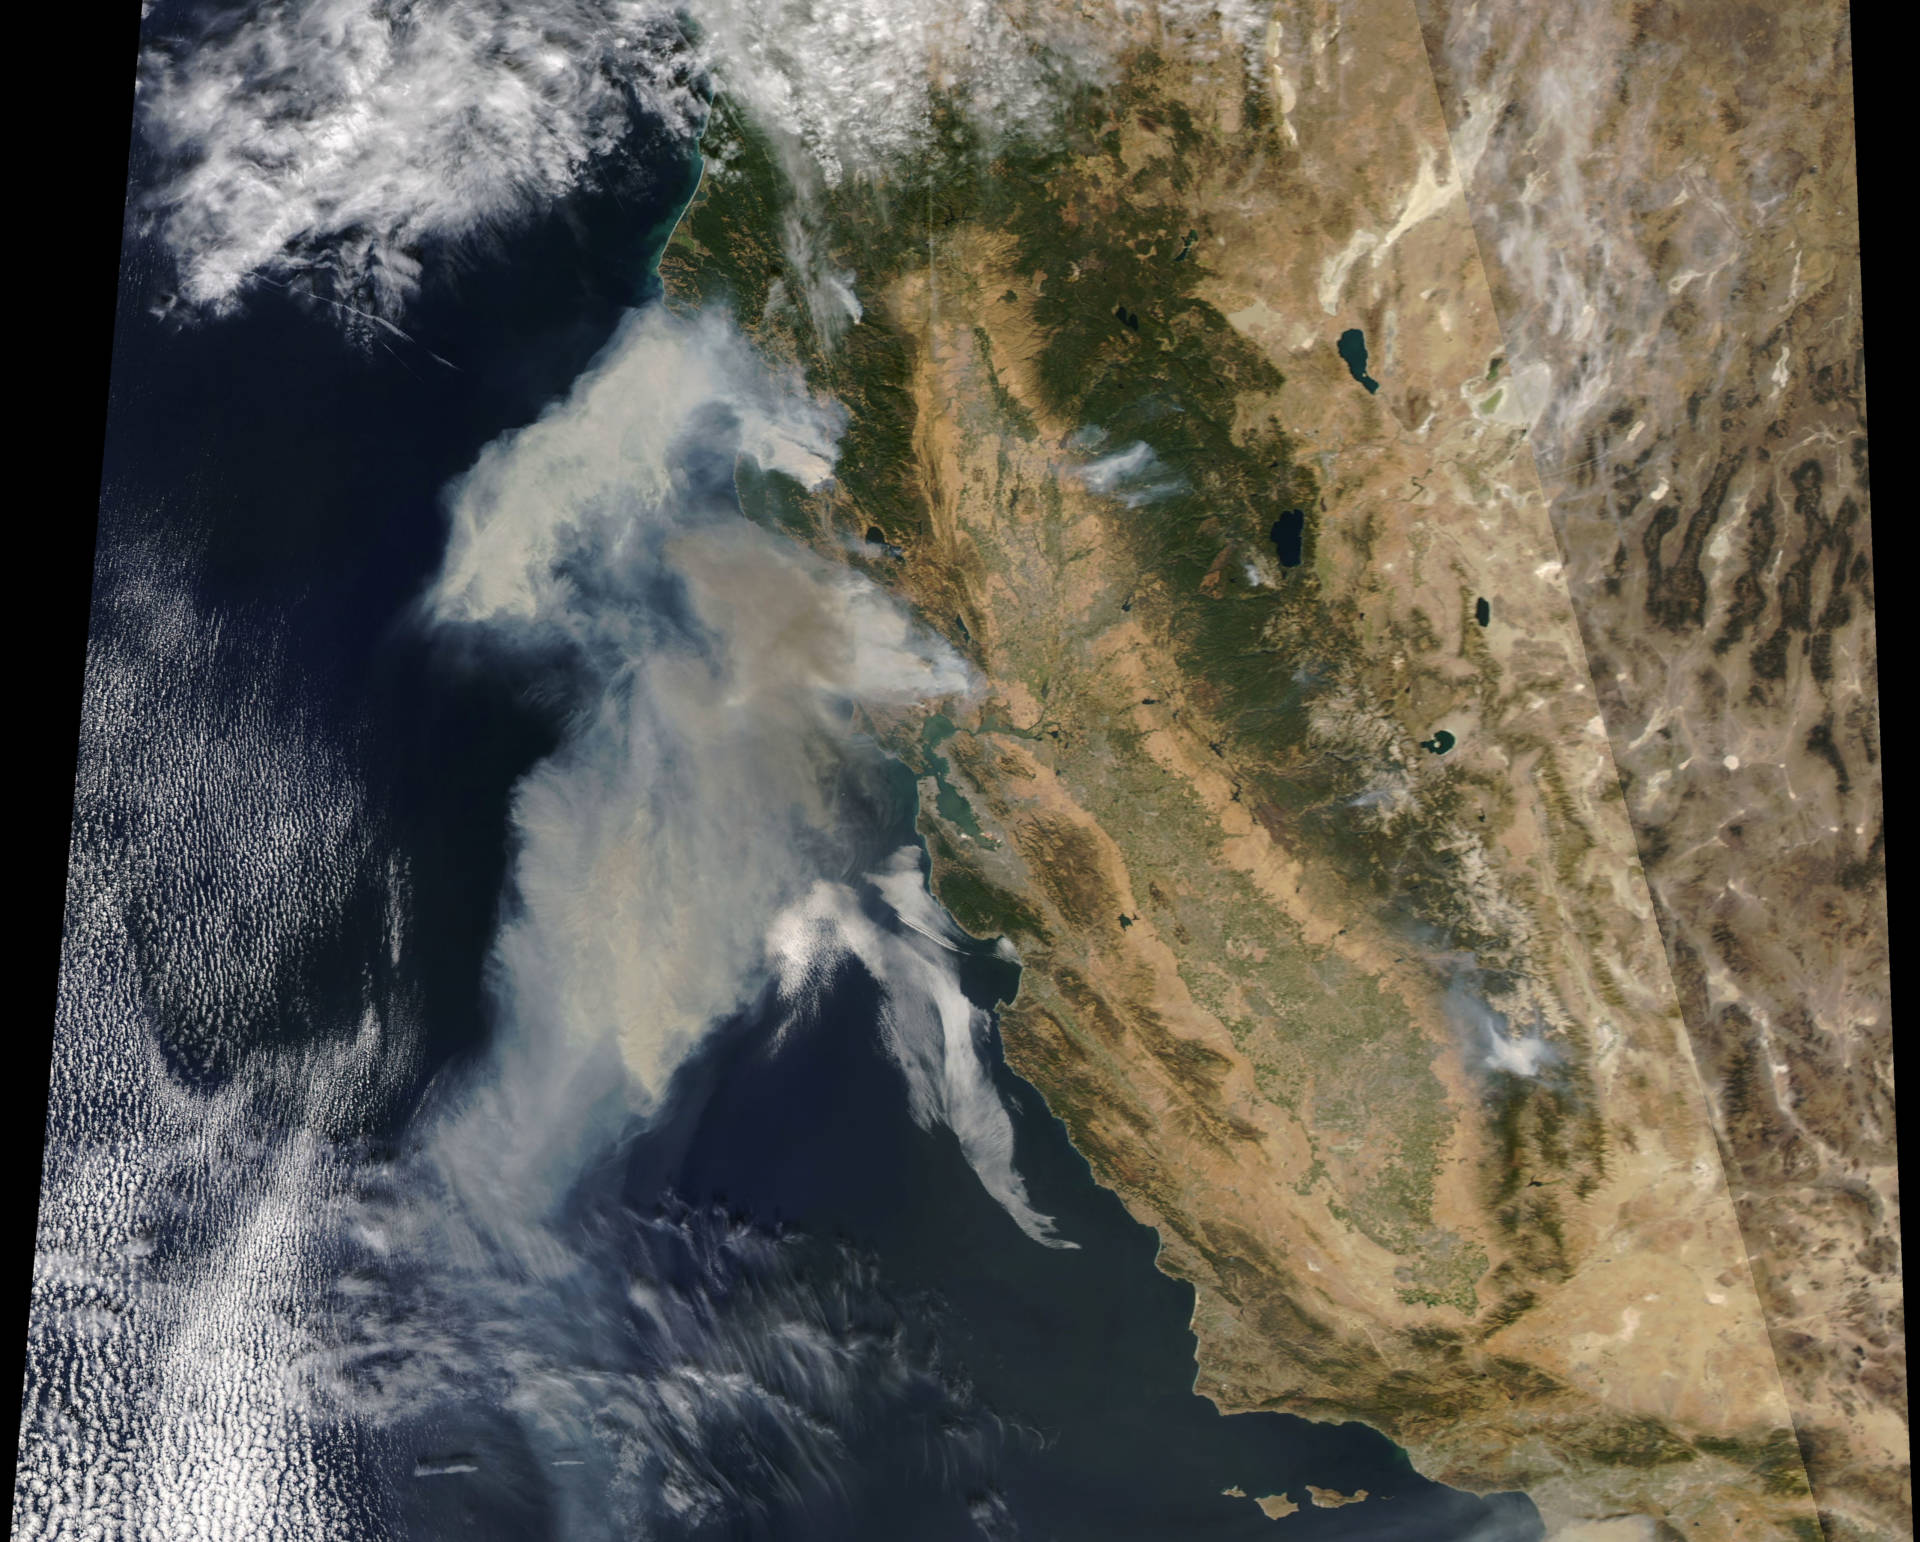 Diablo winds are driven by atmospheric high-pressure systems over the Great Basin. Here, the smoke from the October 2017 North Bay fires as captured by a NASA satellite.